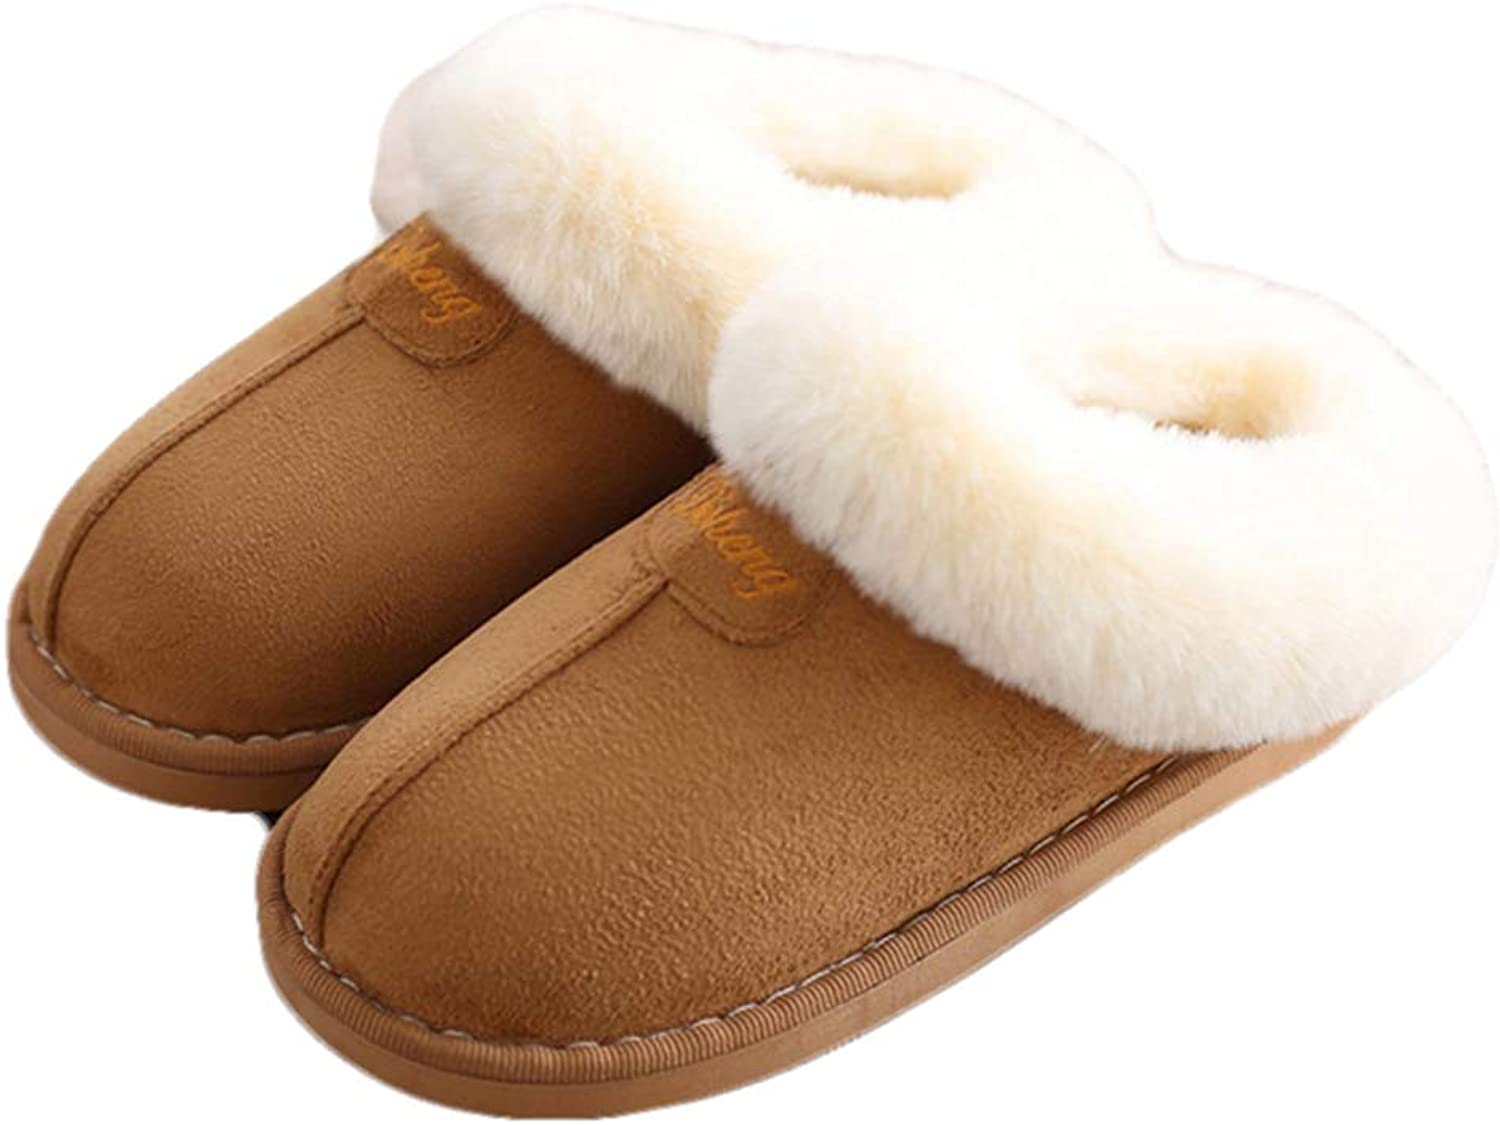 York Zhu Home Slippers,Memory Foam Fluffy Warm Non-Slip Slip-on House shoes Plush Indoor